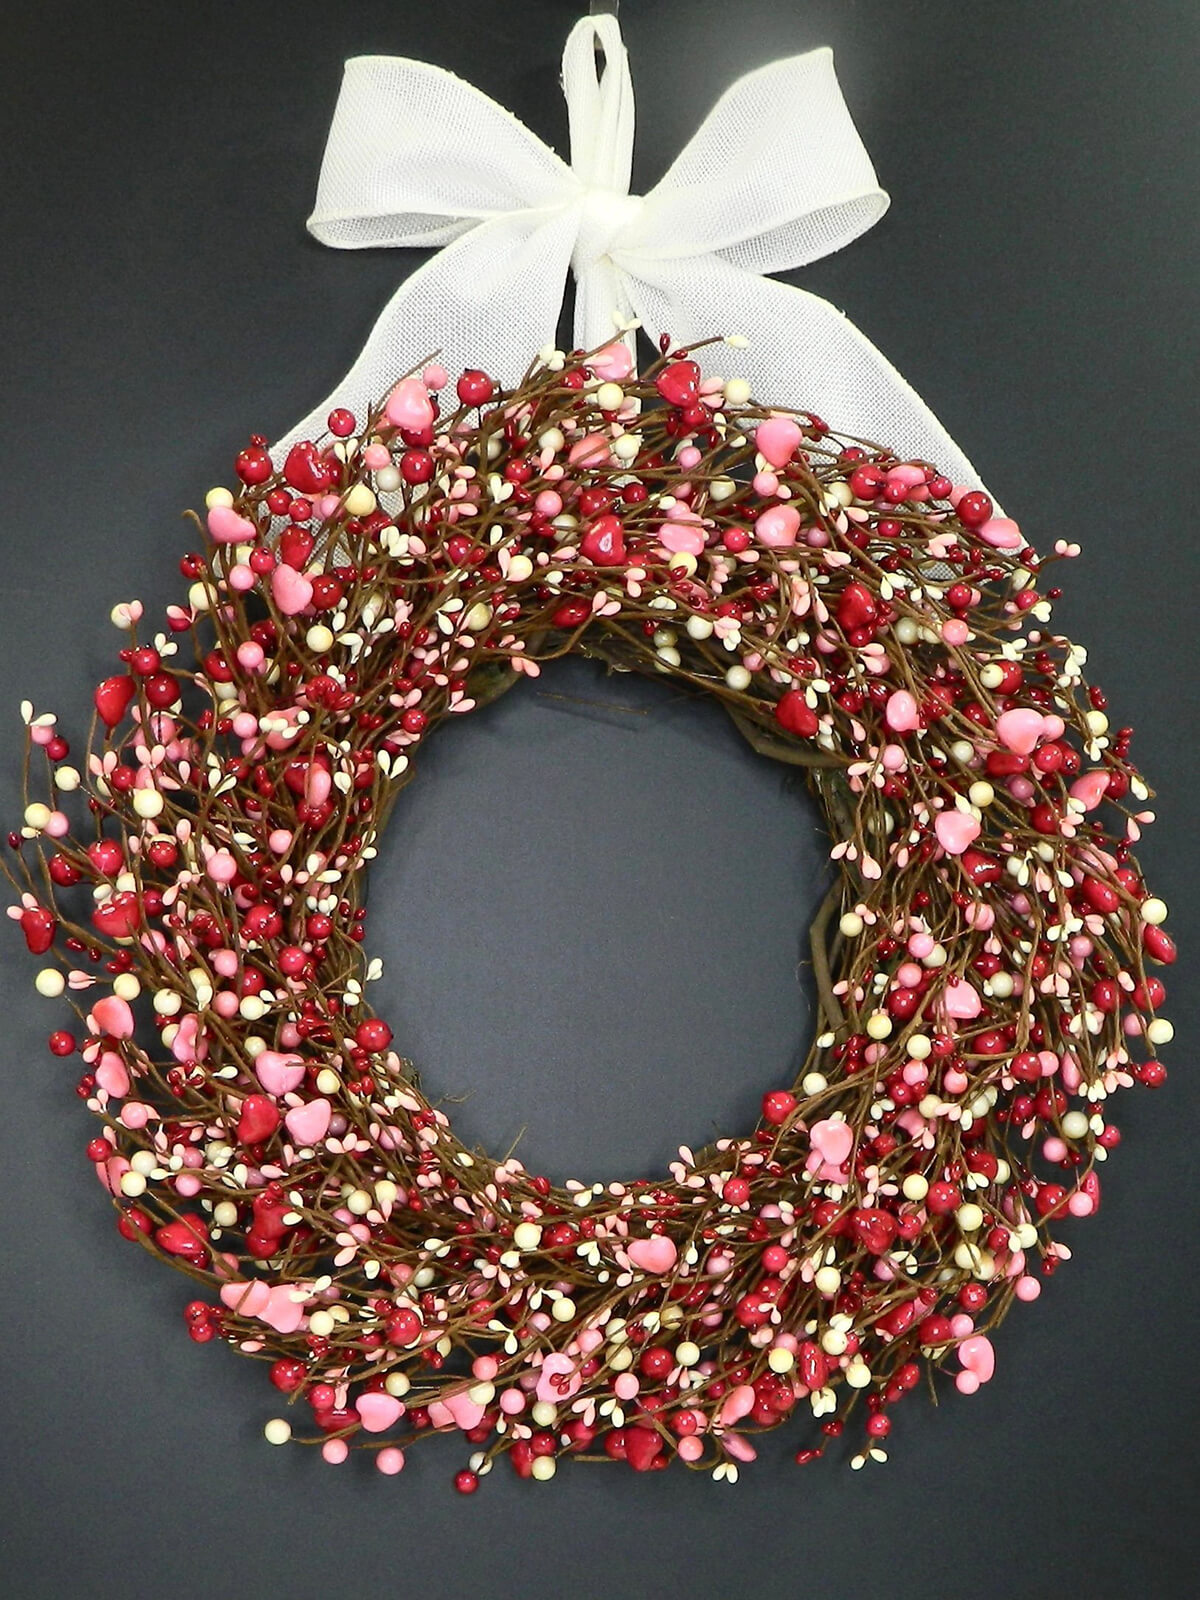 Candy Heart Droplets and Pearls Wreath